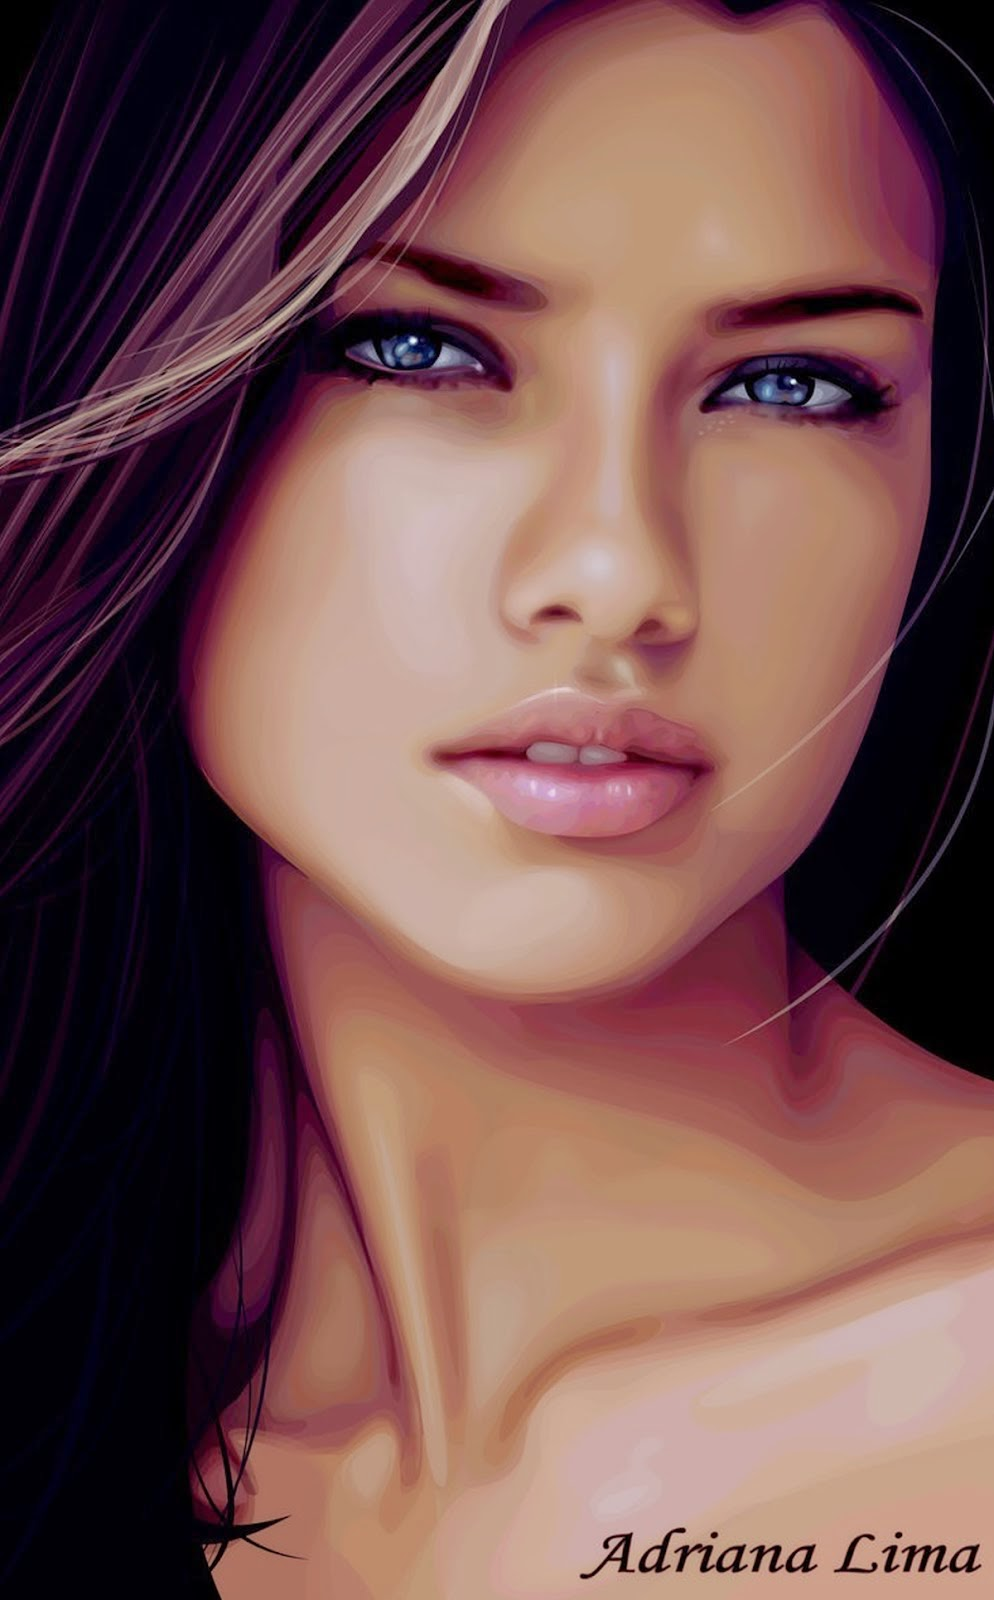 ADRIANA LIMA PORTRAIT CLOSE UP